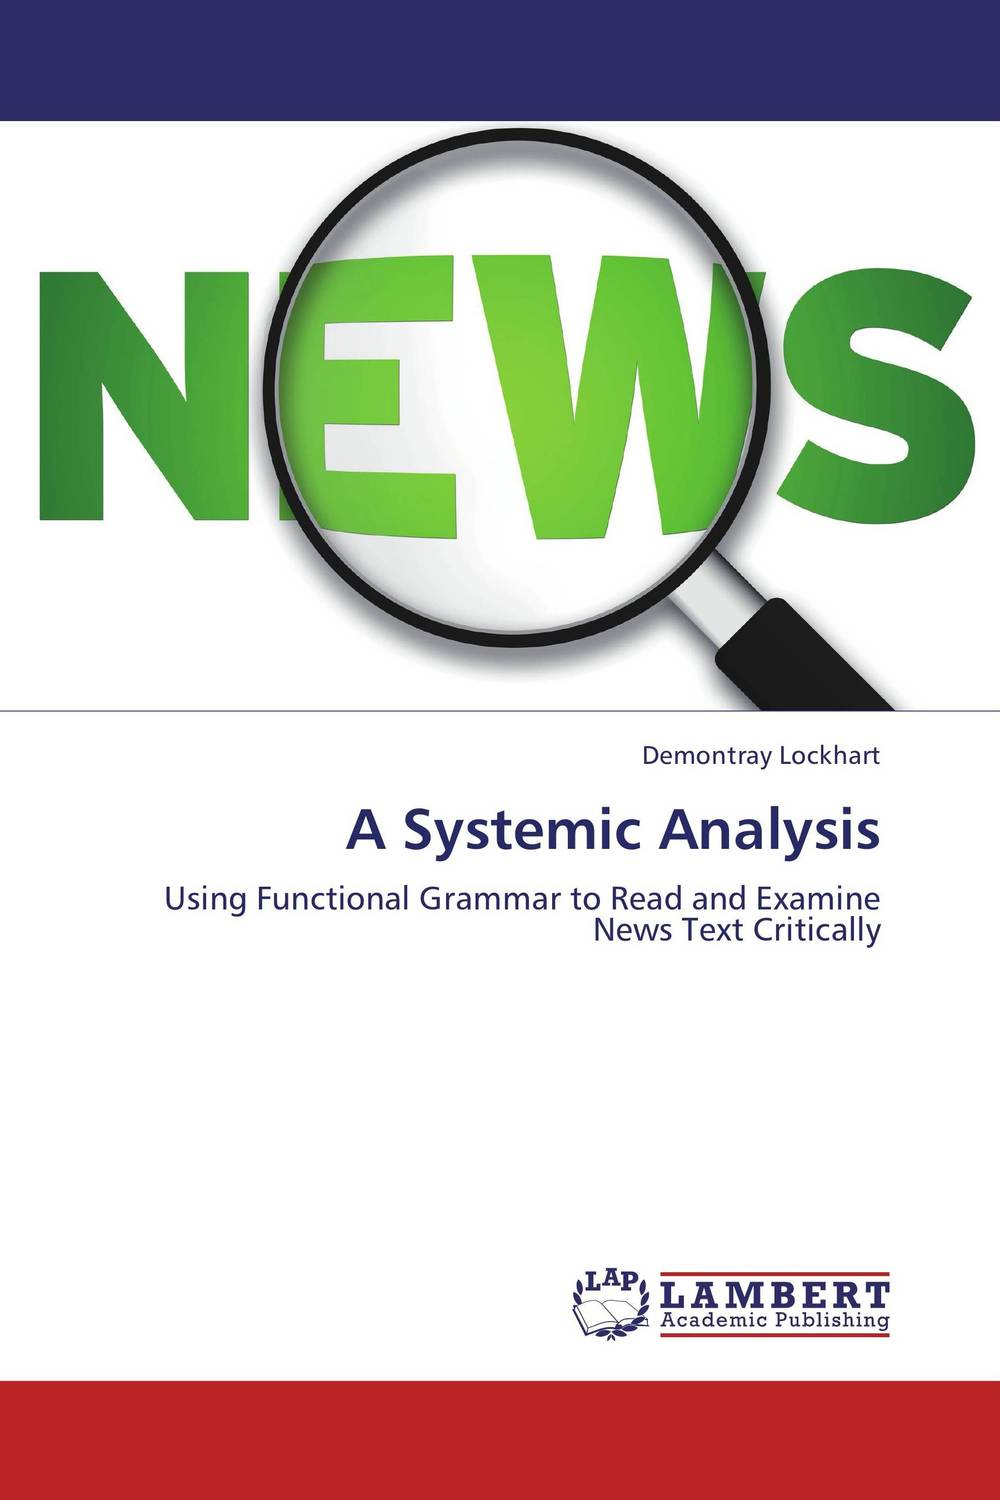 A Systemic Analysis